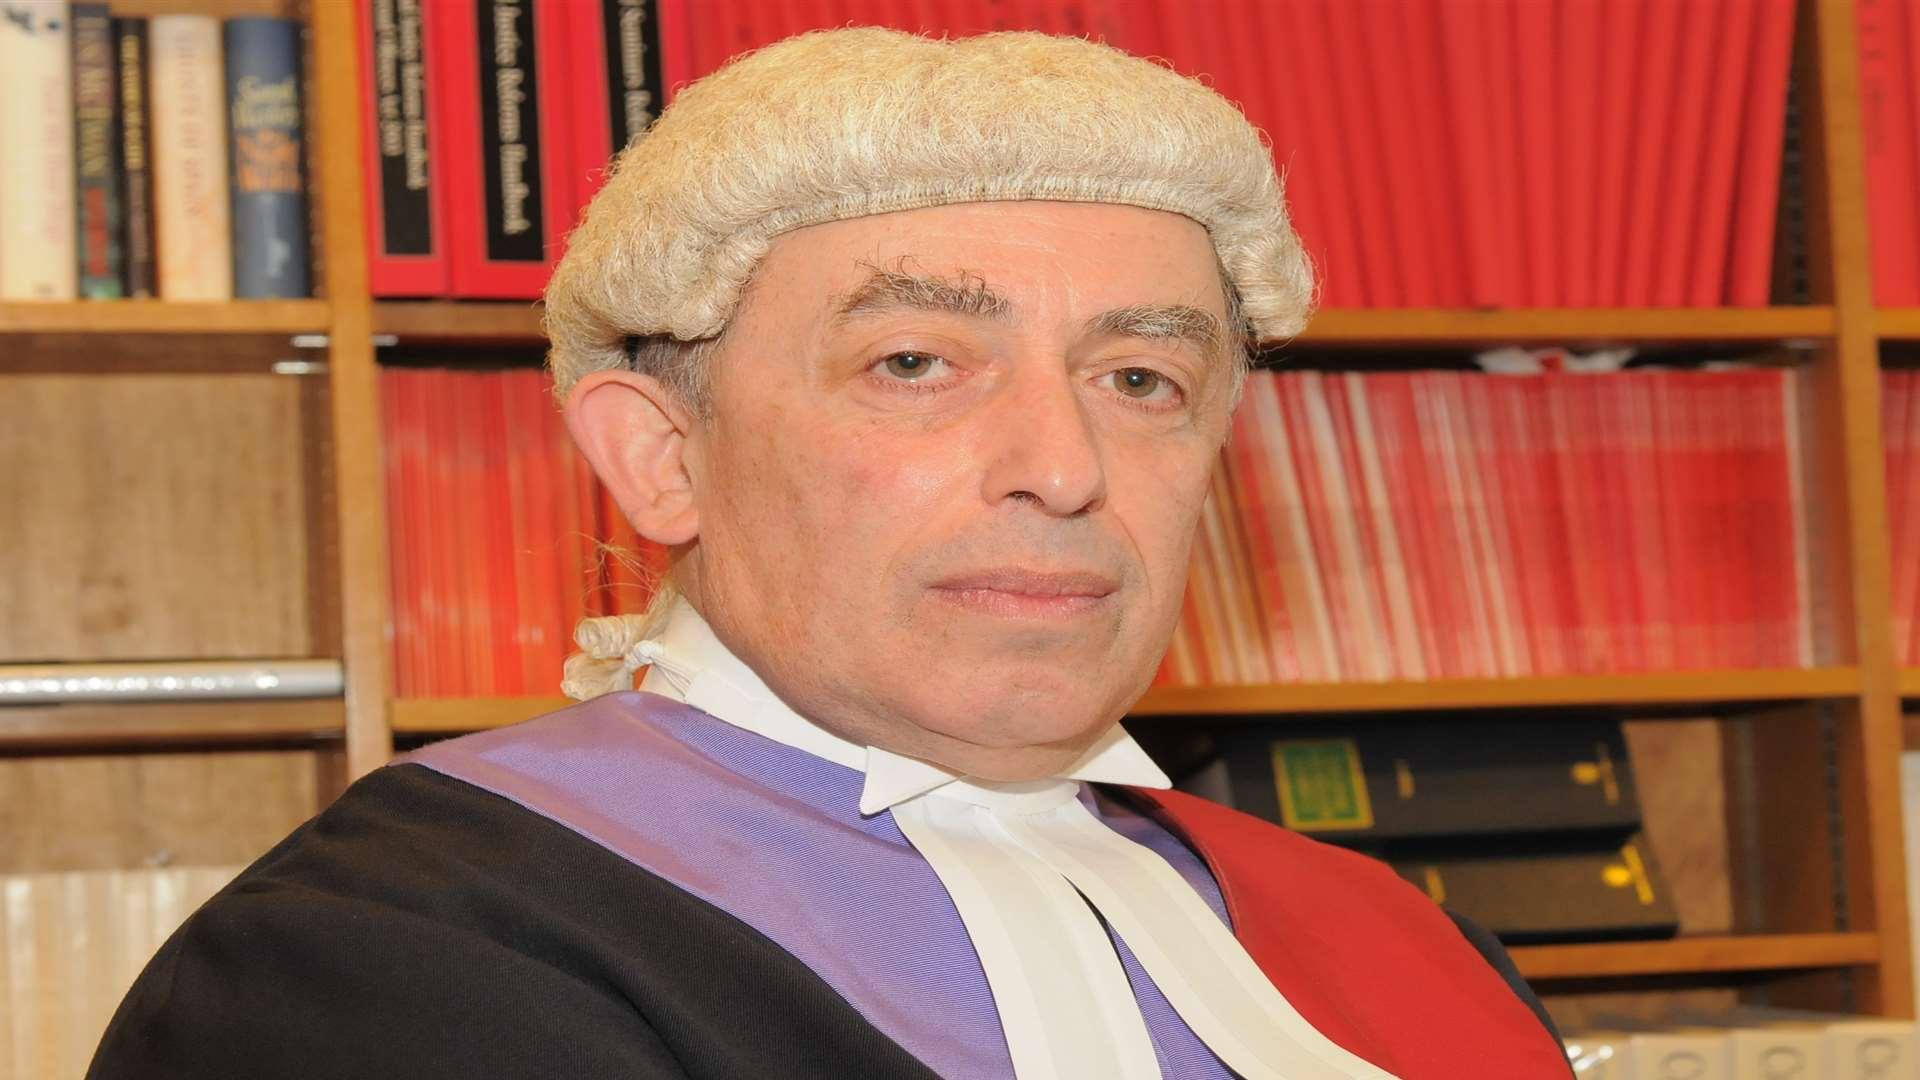 Judge Philip Statman presided over the case